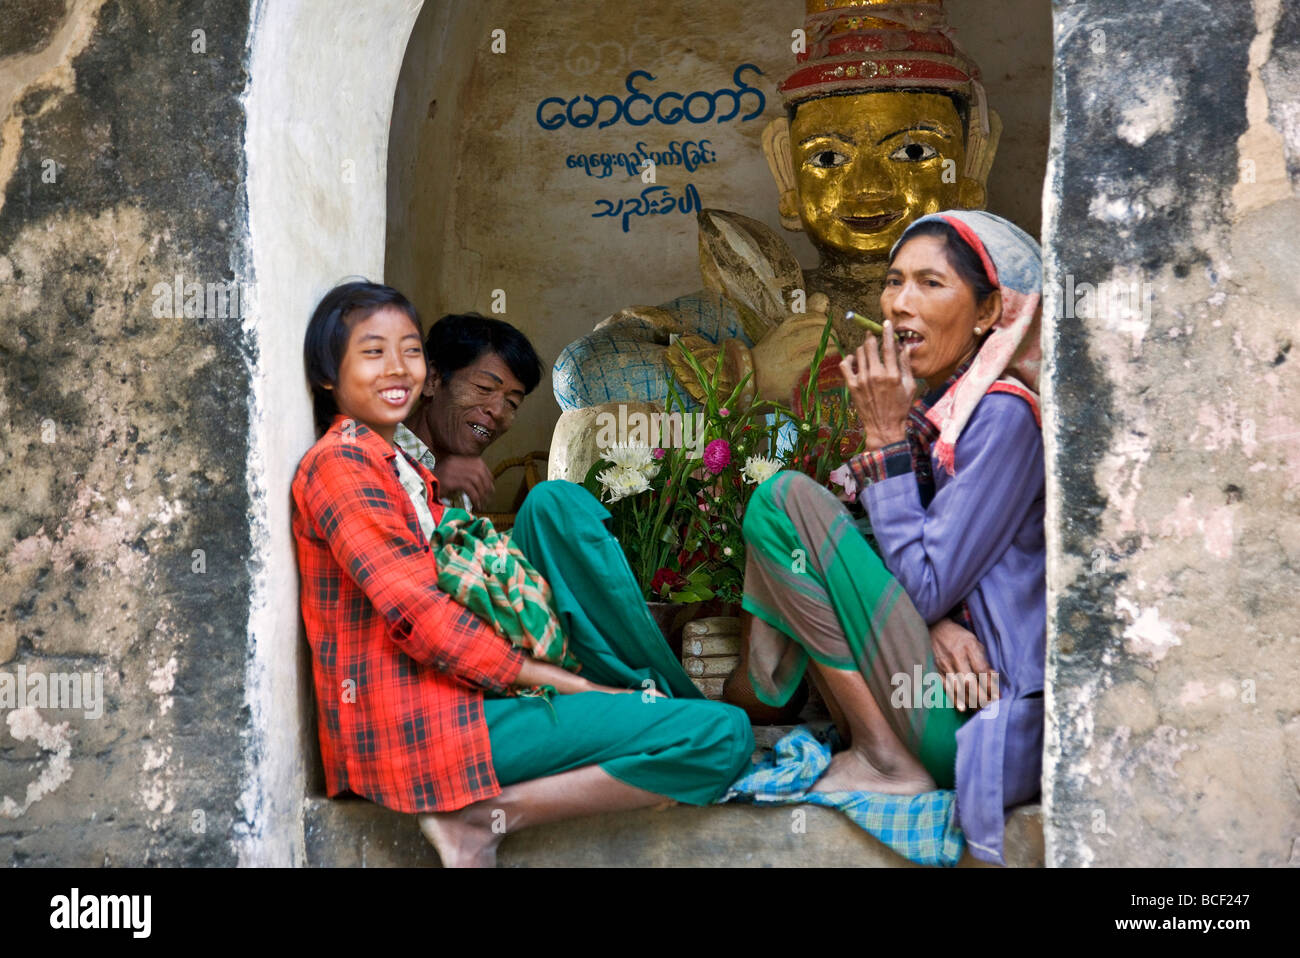 Myanmar. Burma. Bagan. A Burmese family pauses to rest at the Tharaba Gate, the gates into the old city of Bagan. - Stock Image